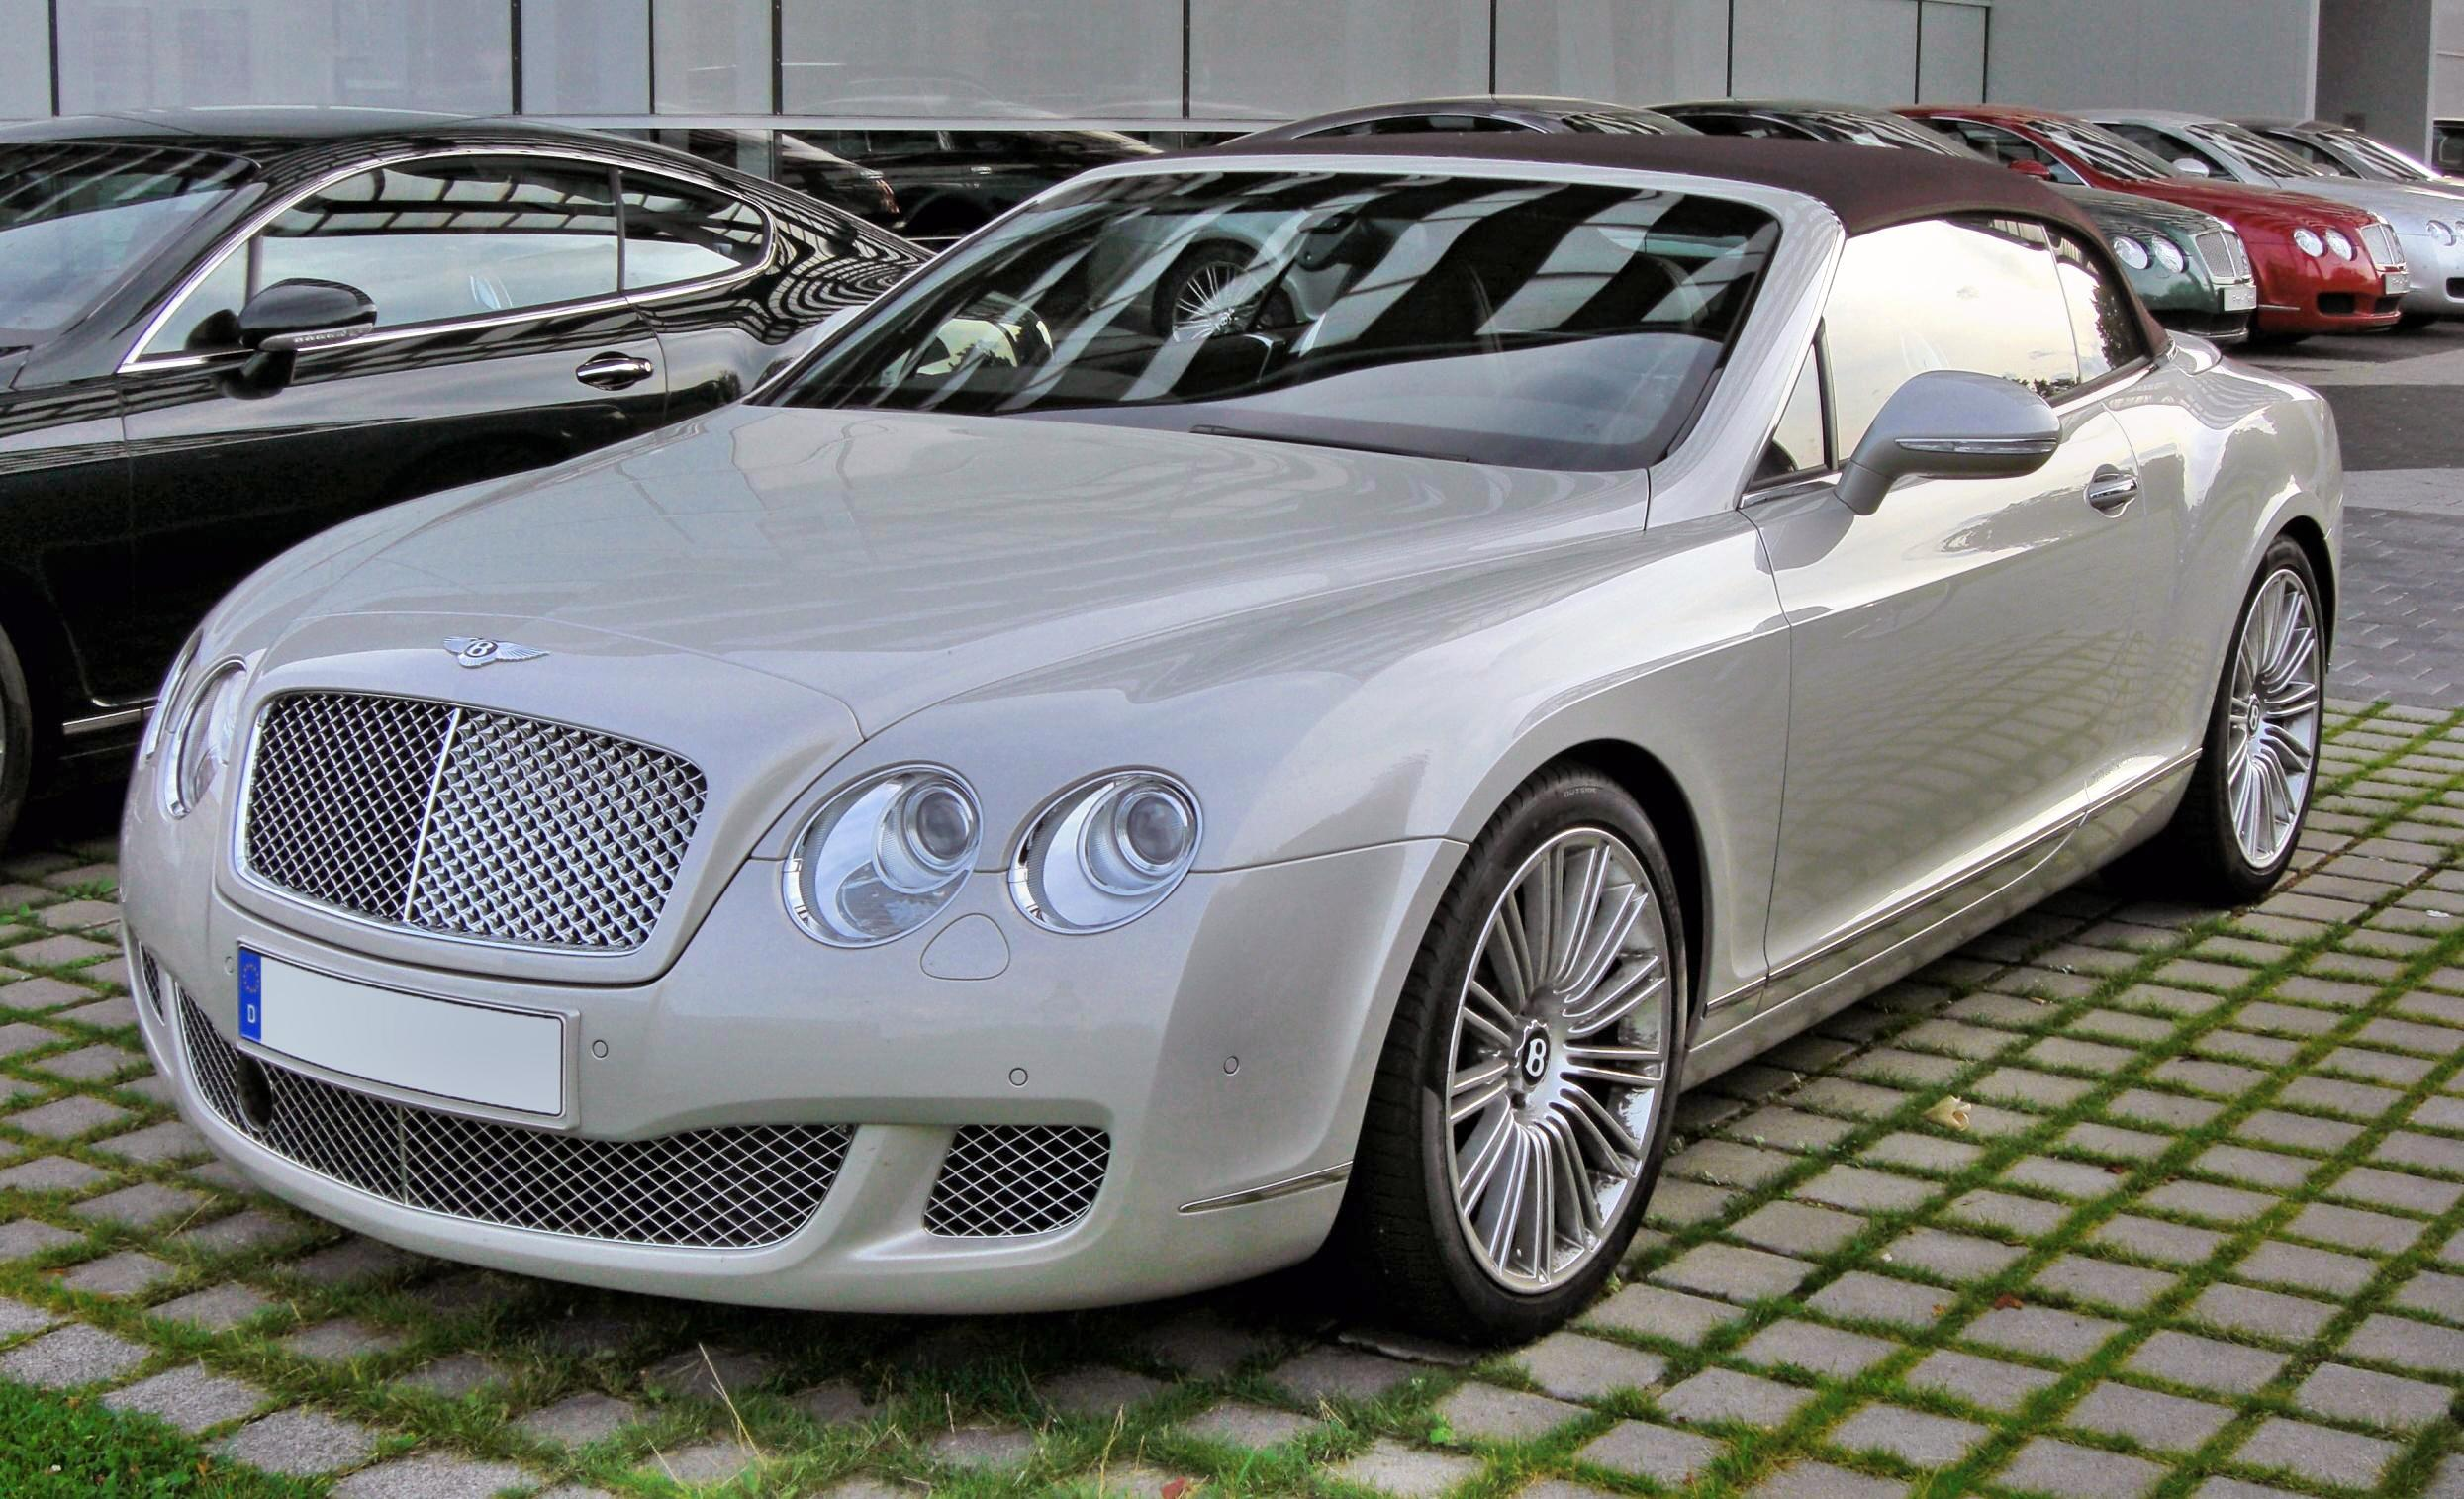 2008 Bentley Continental Gt Speed #10